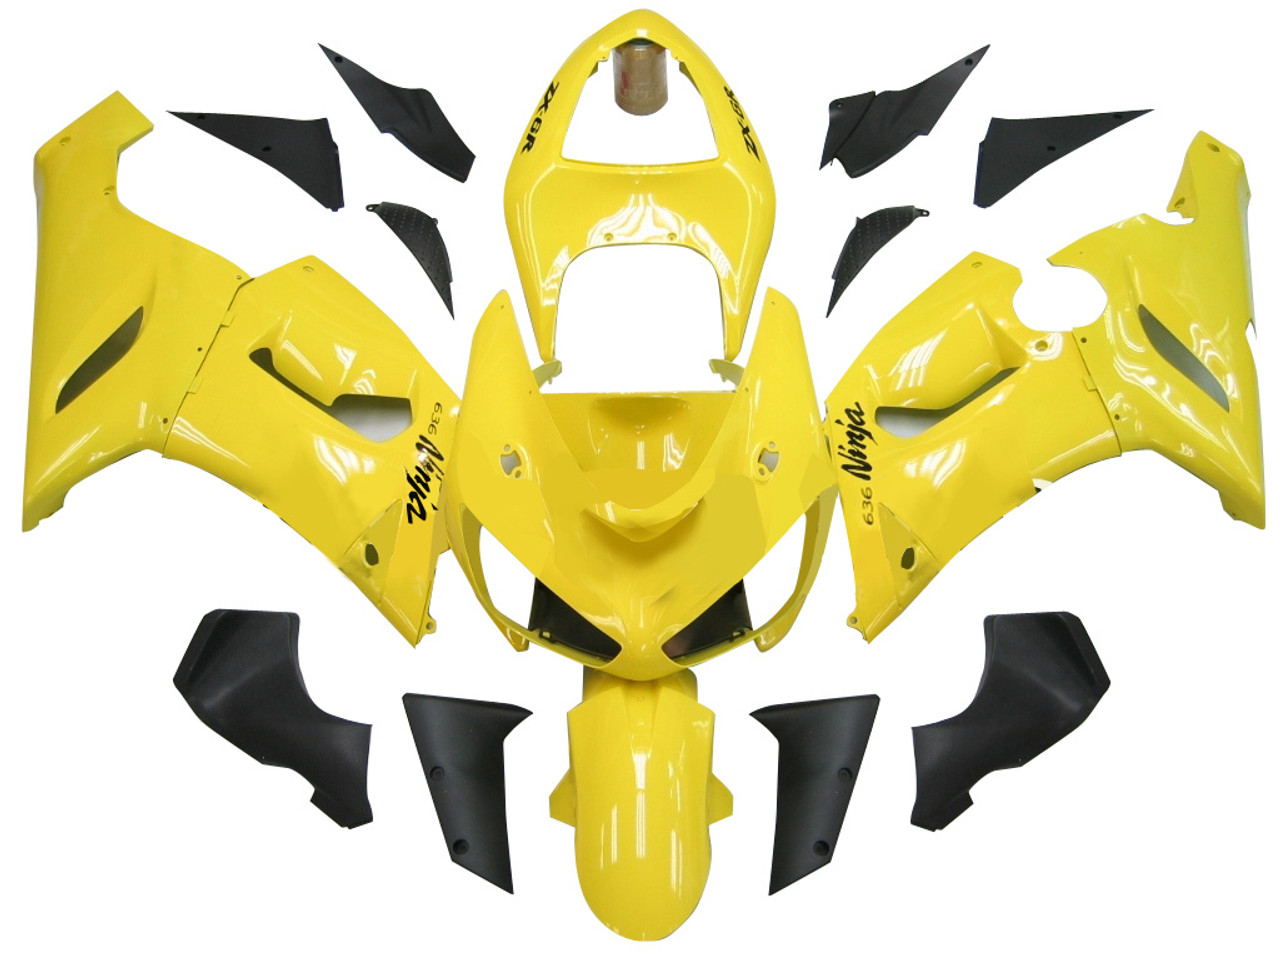 Fairings Kawasaki Zx6r 636 Yellow Black Ninja Racing 2005 2006